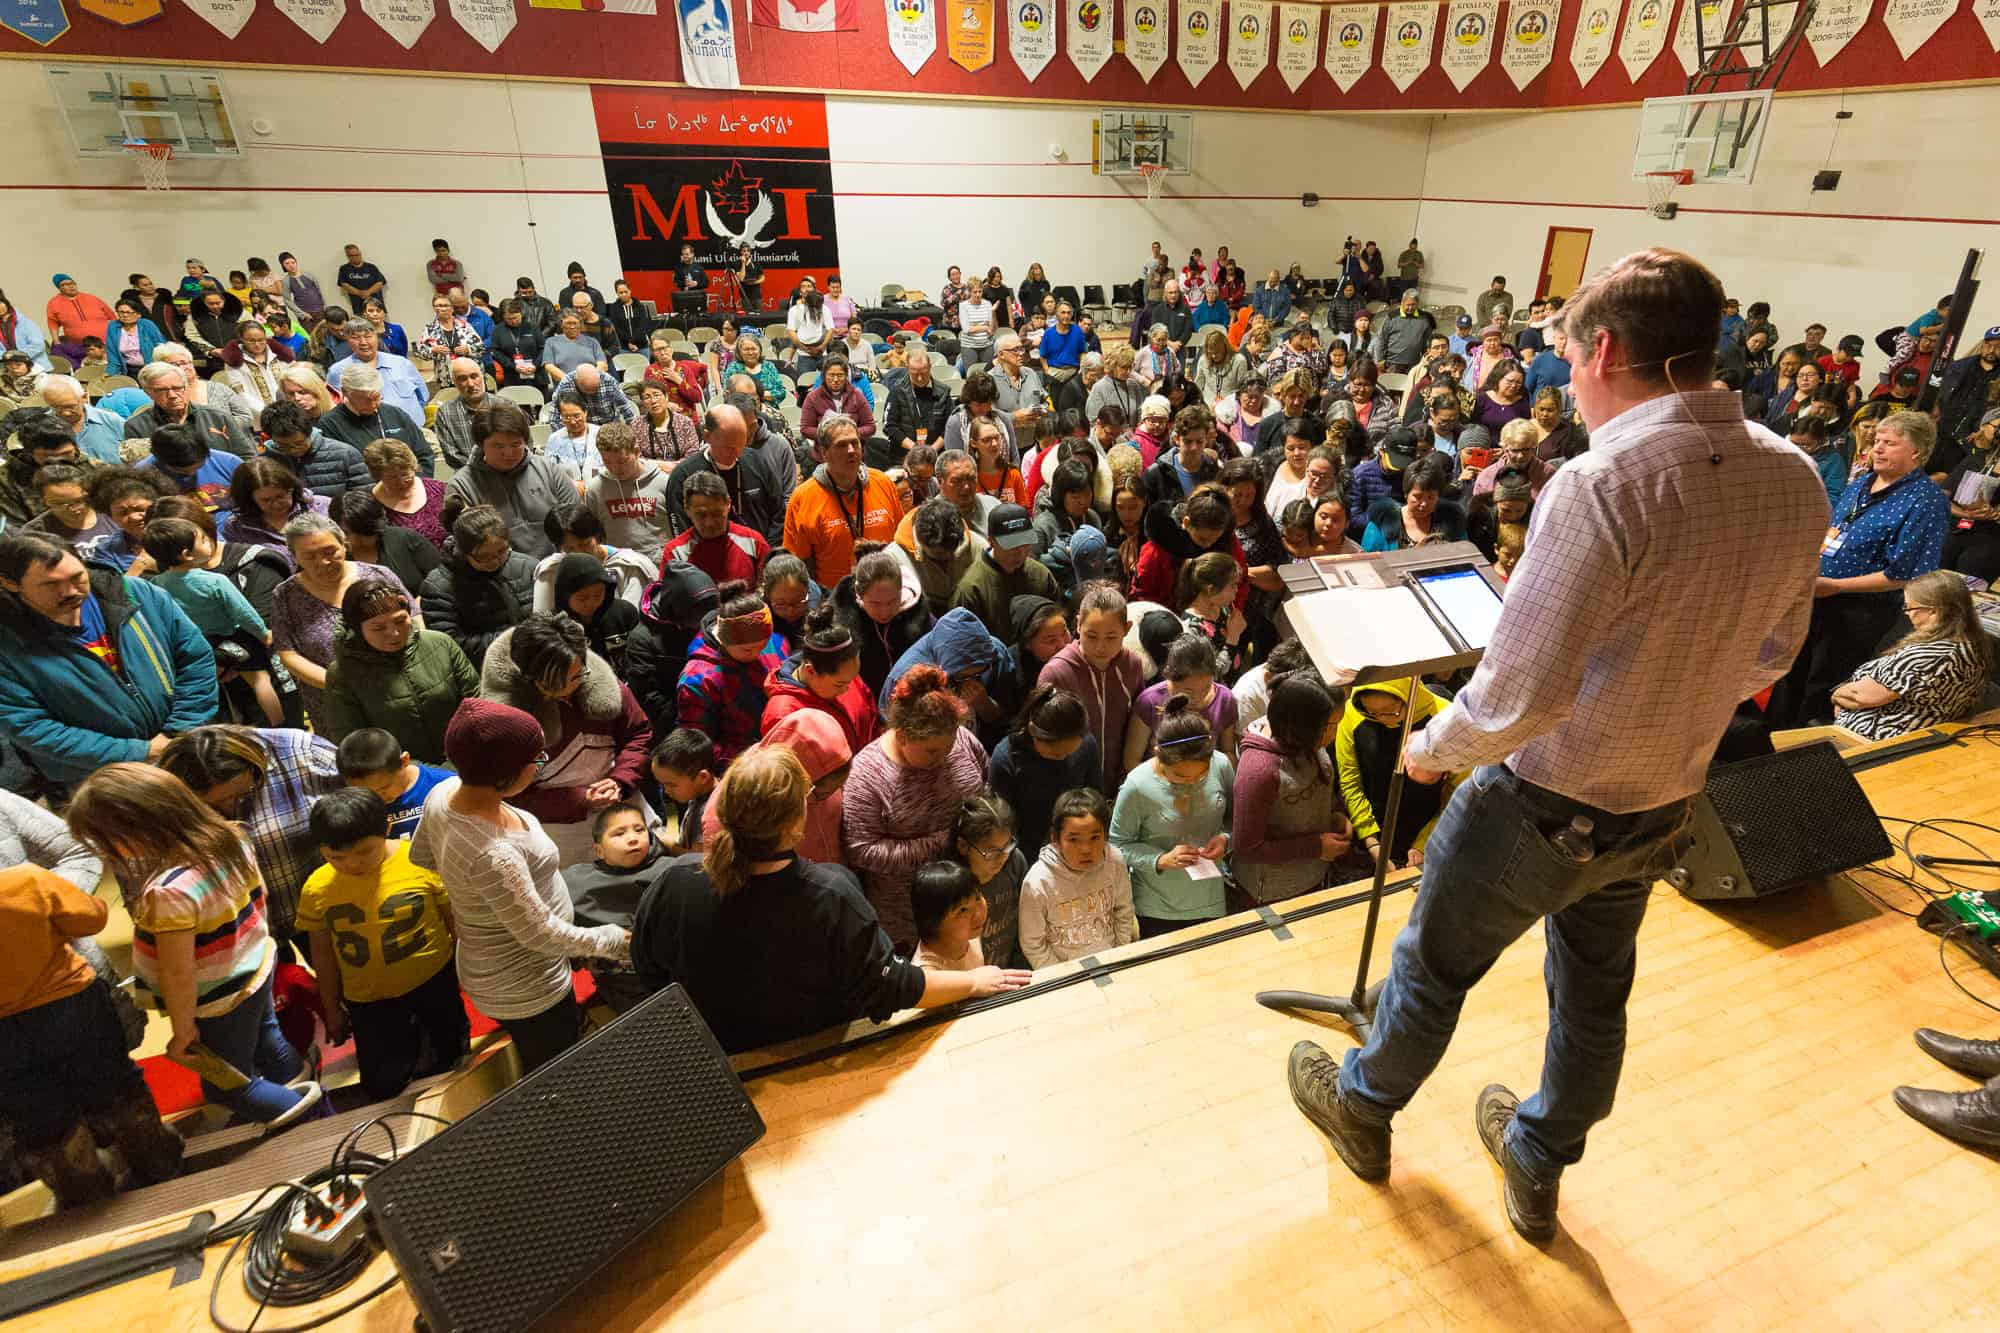 Will Graham, grandson of Billy Graham, shared a Gospel message at the Celebration of Hope in Rankin Inlet, Nunavut